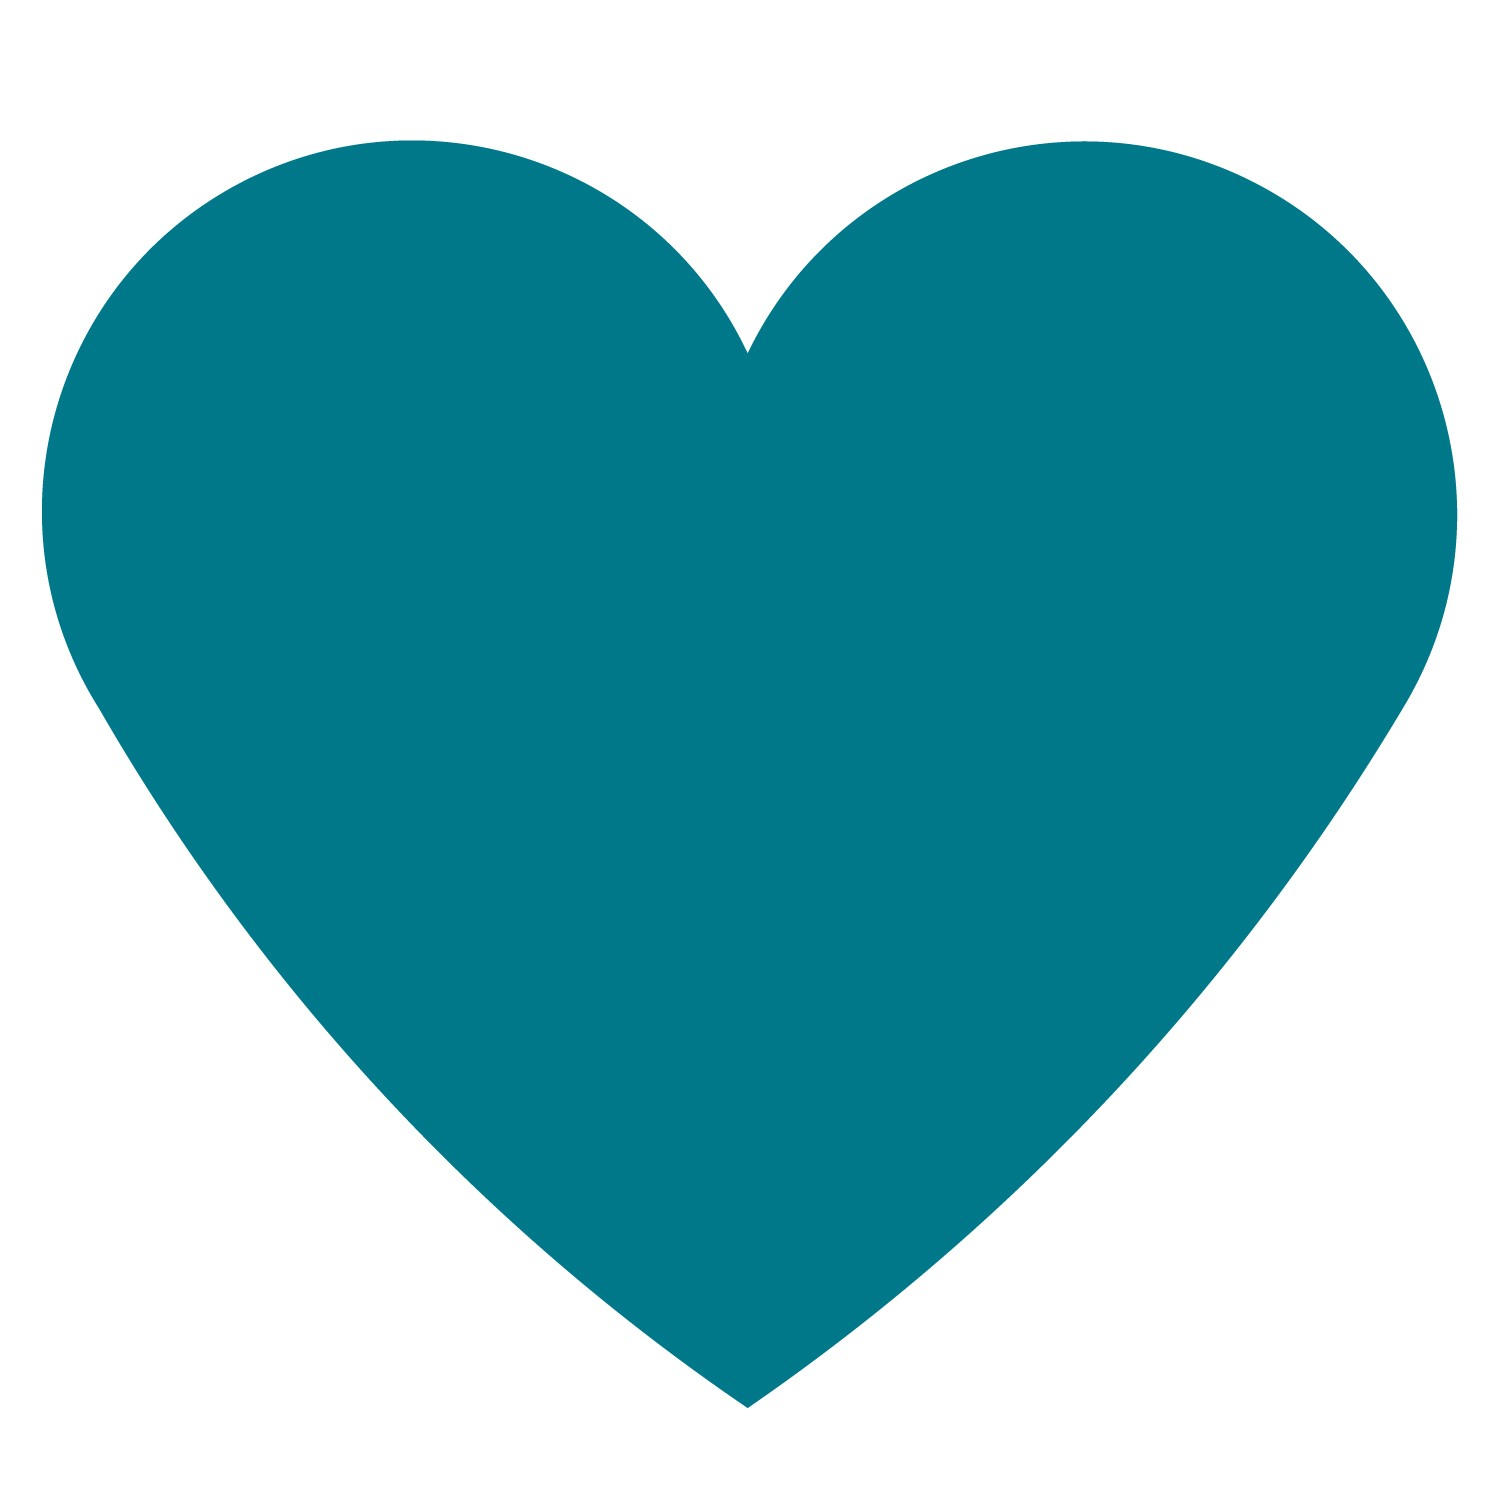 Heart-shaped clipart simple #5